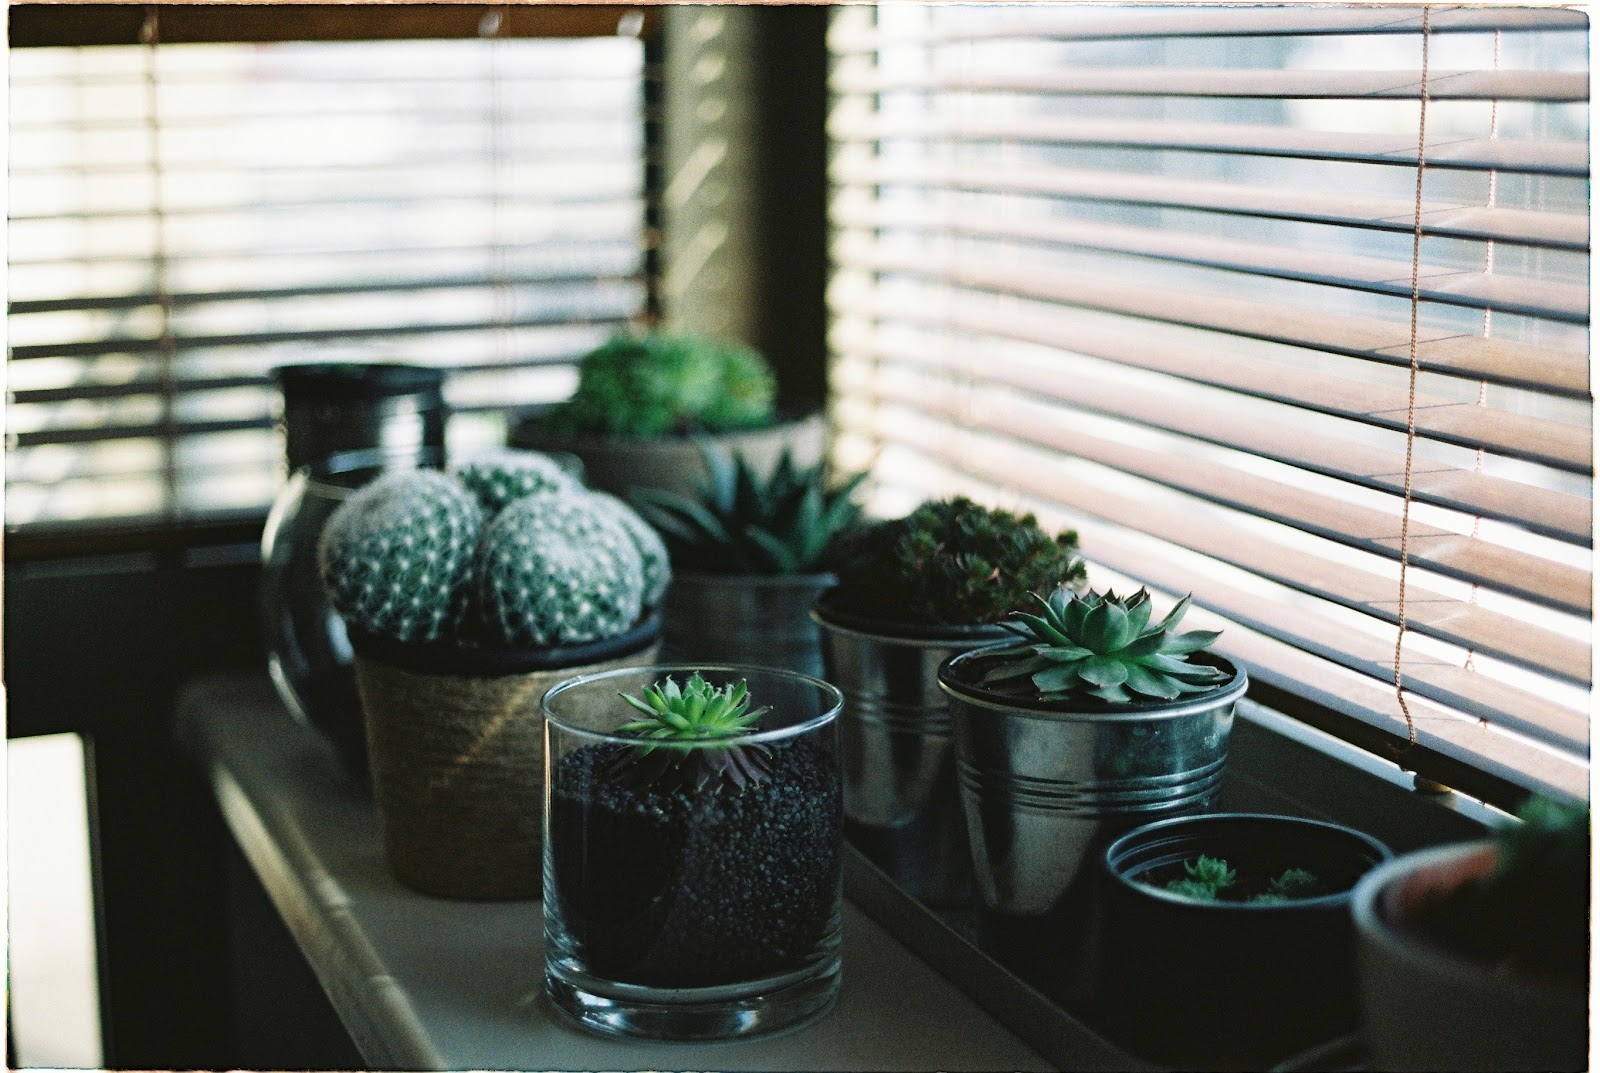 Cacti and succulent plans sitting on a window ledge